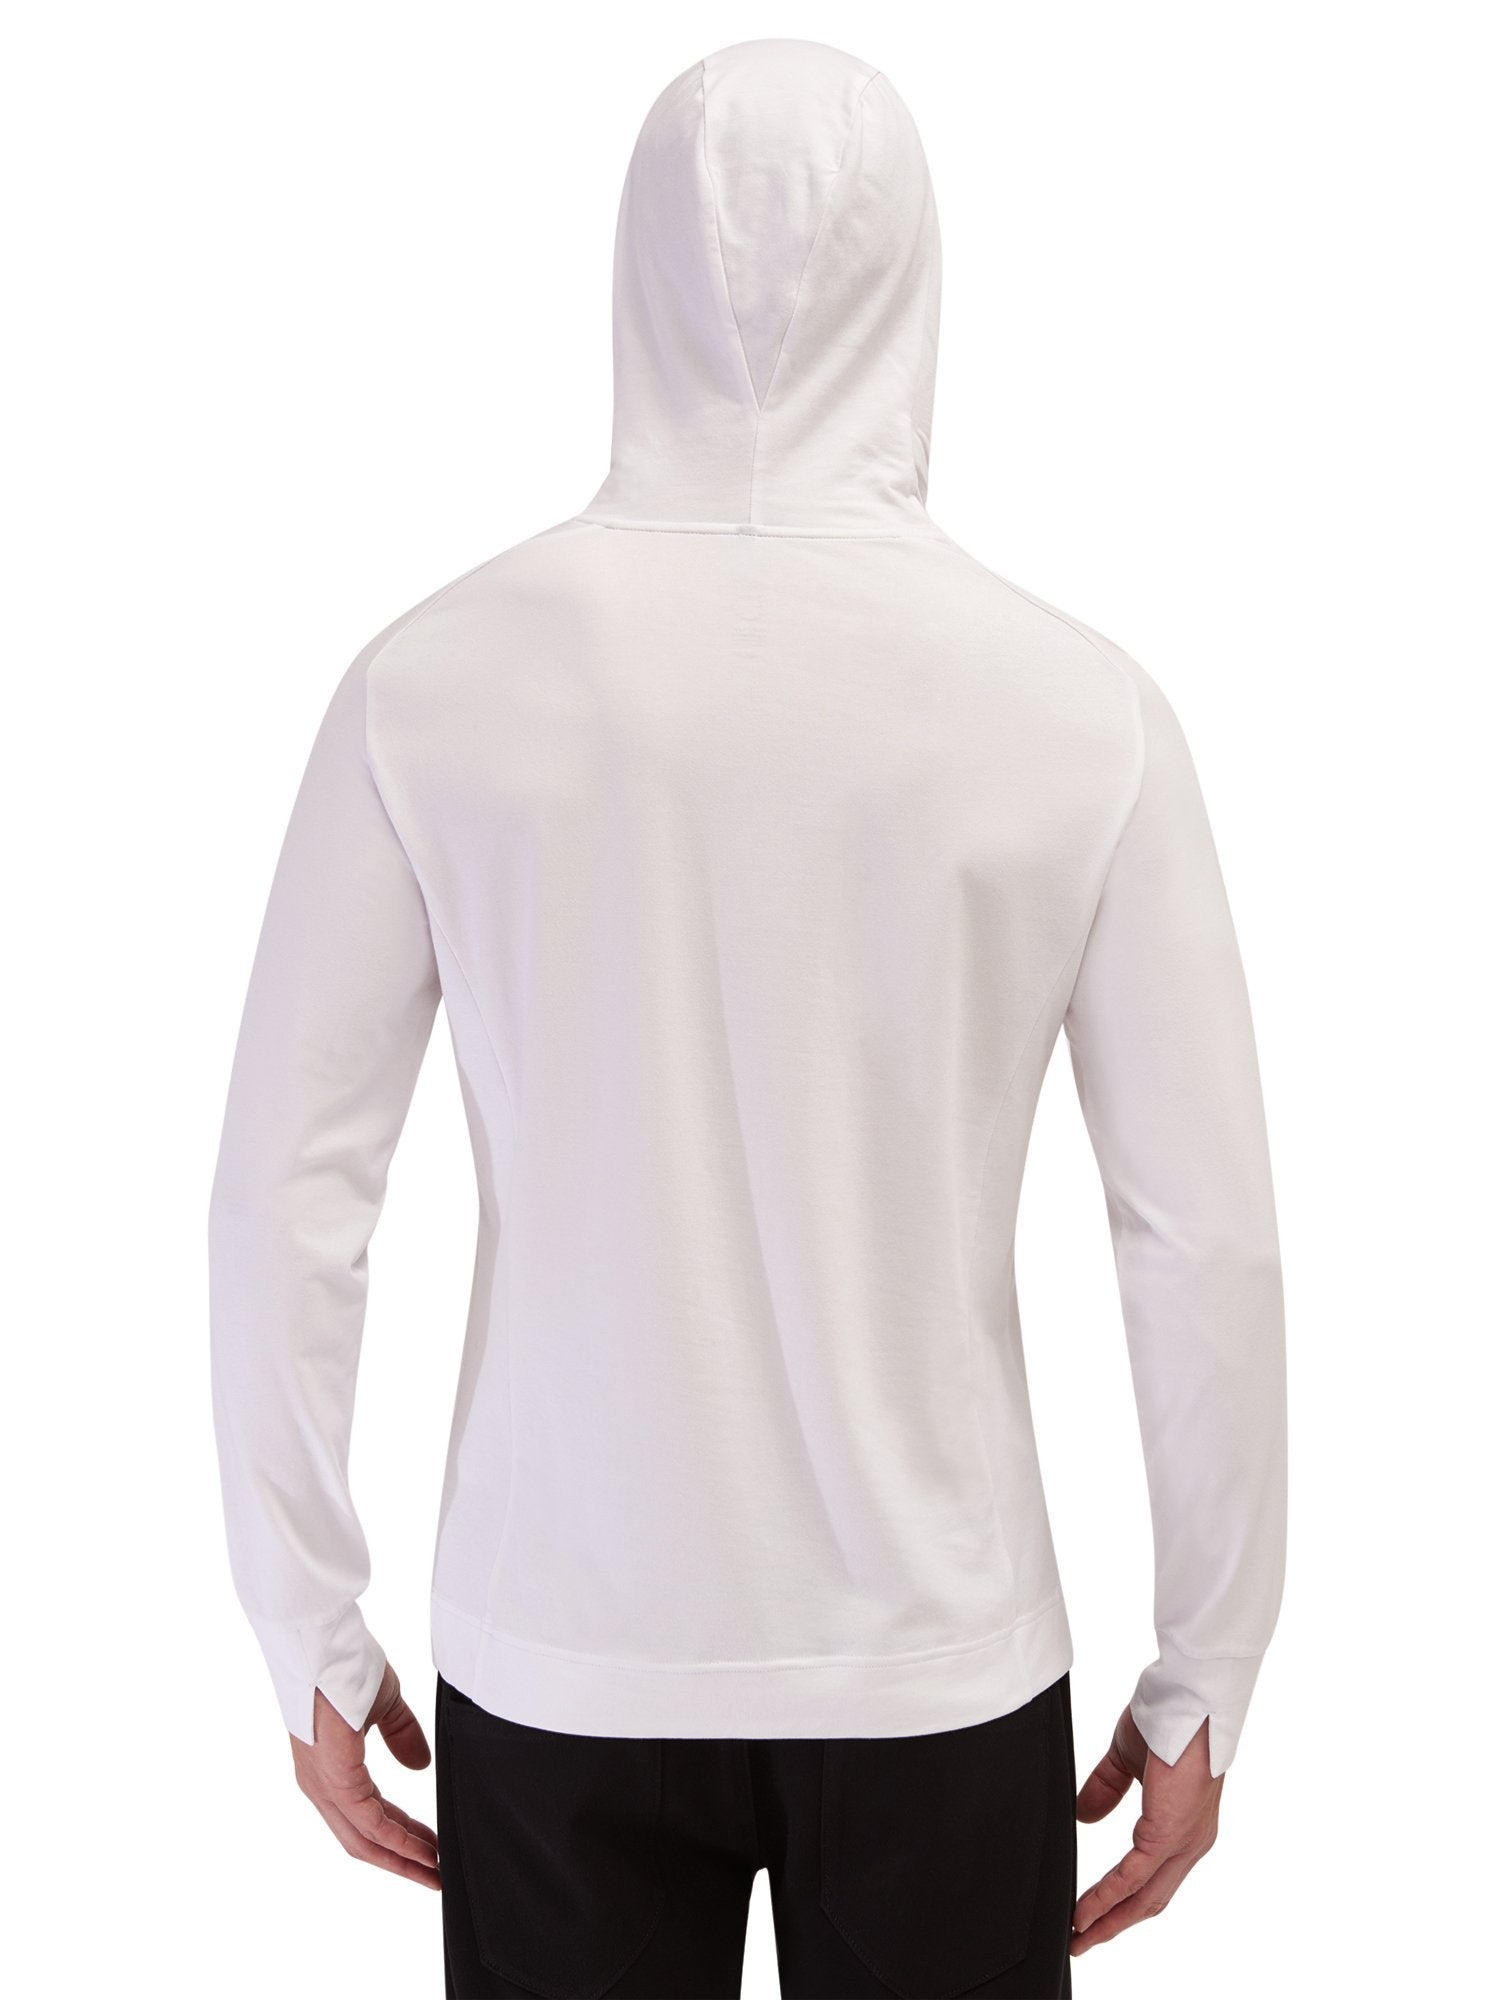 Bexley Hooded Pullover - EFM Menswear - Engineered For Motion